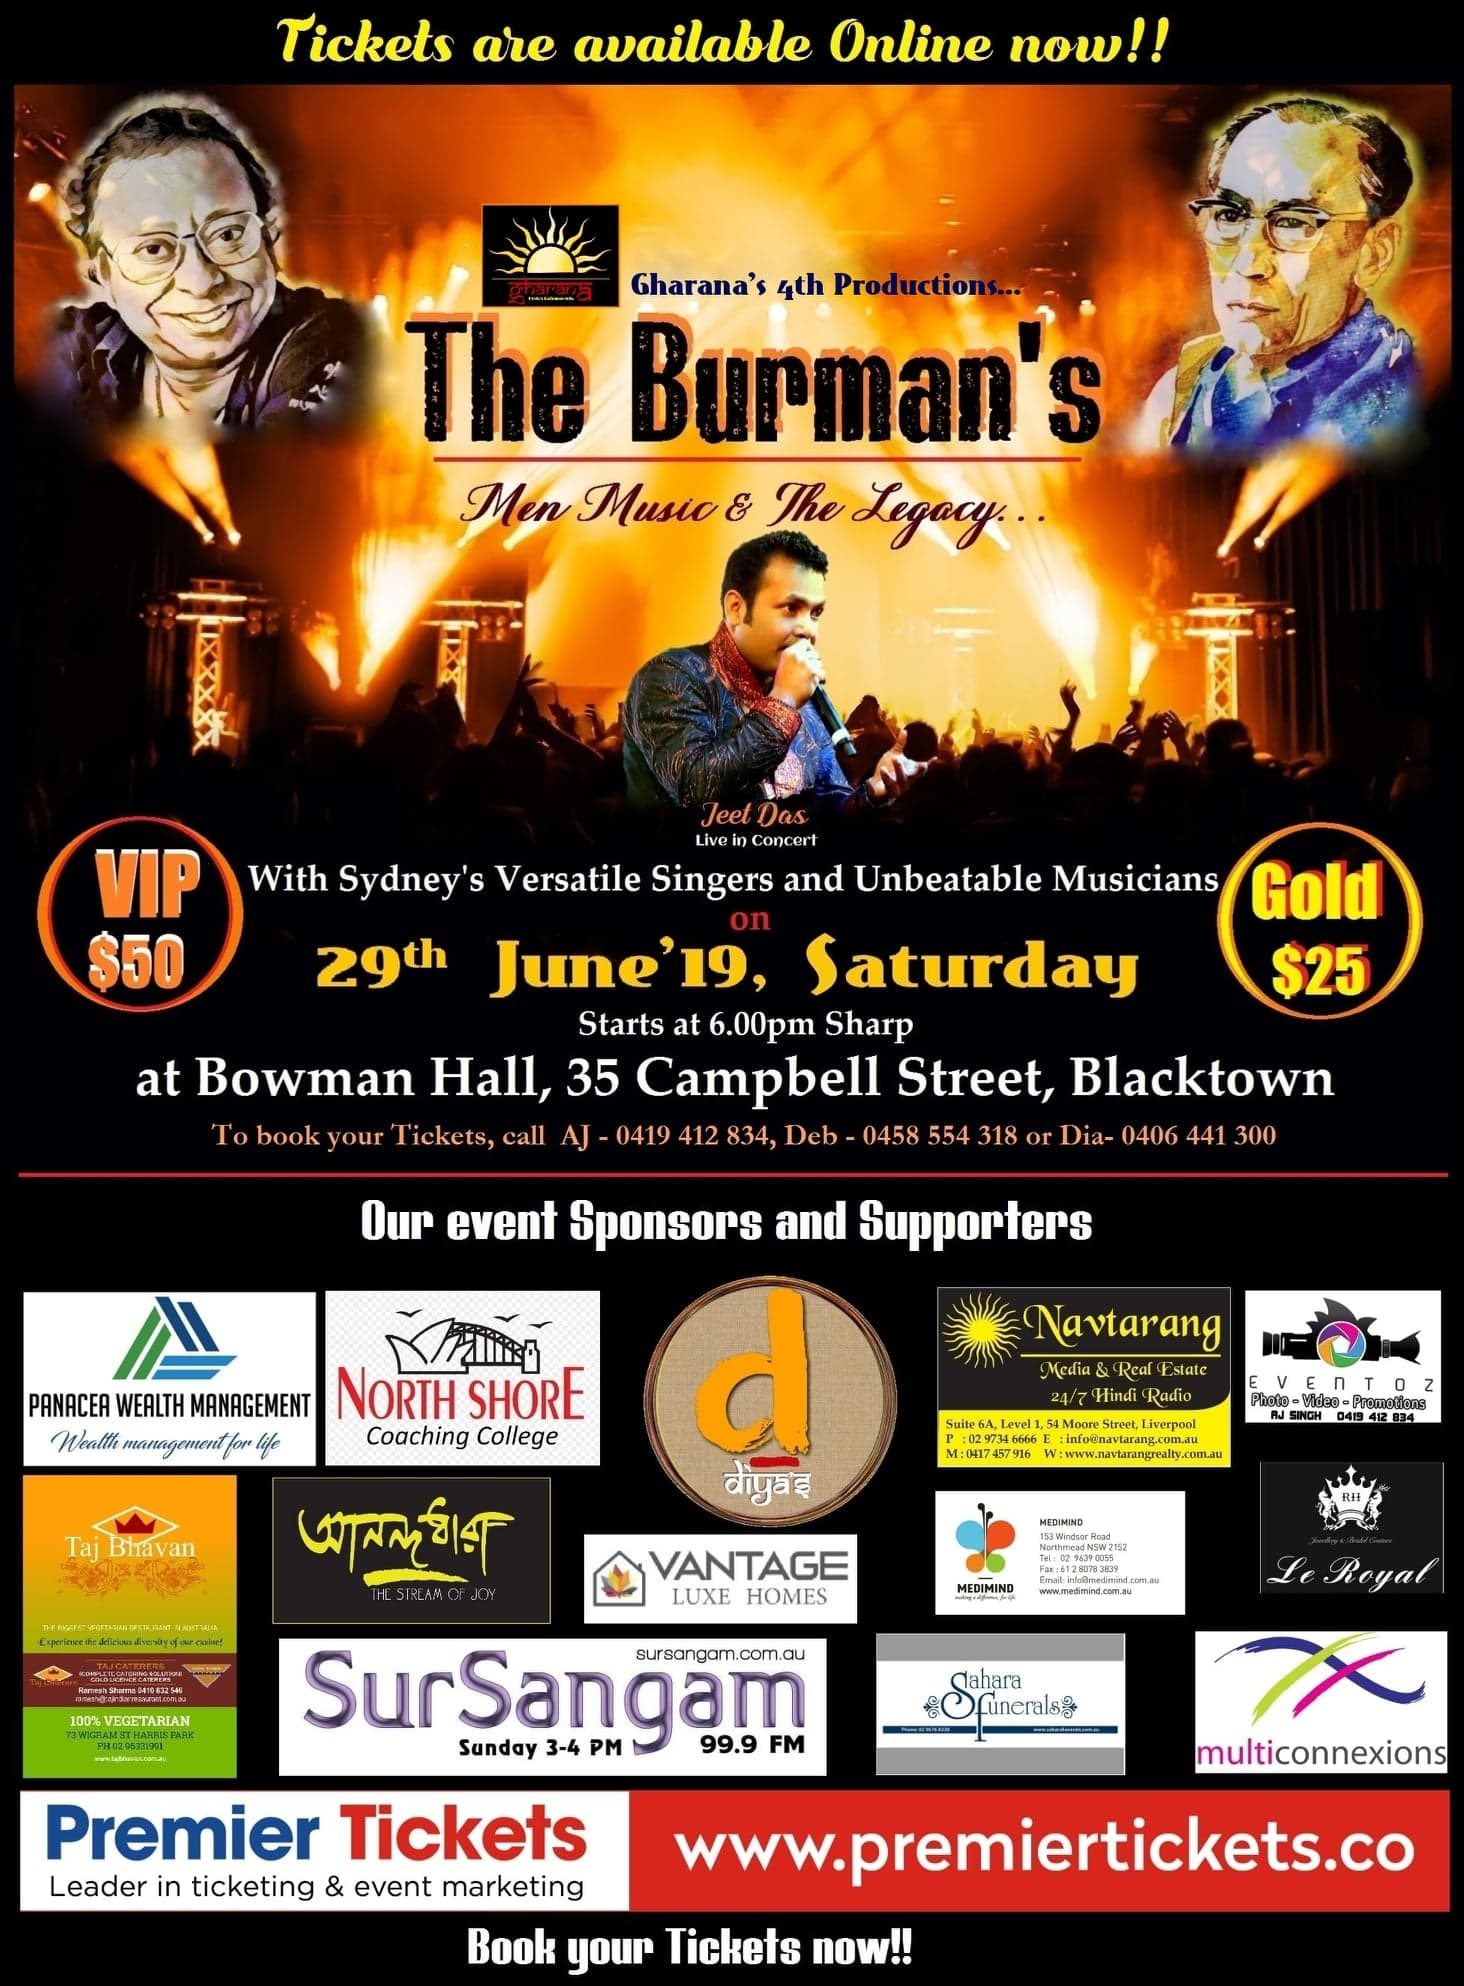 The Burman's – Men, Music & The Legacy